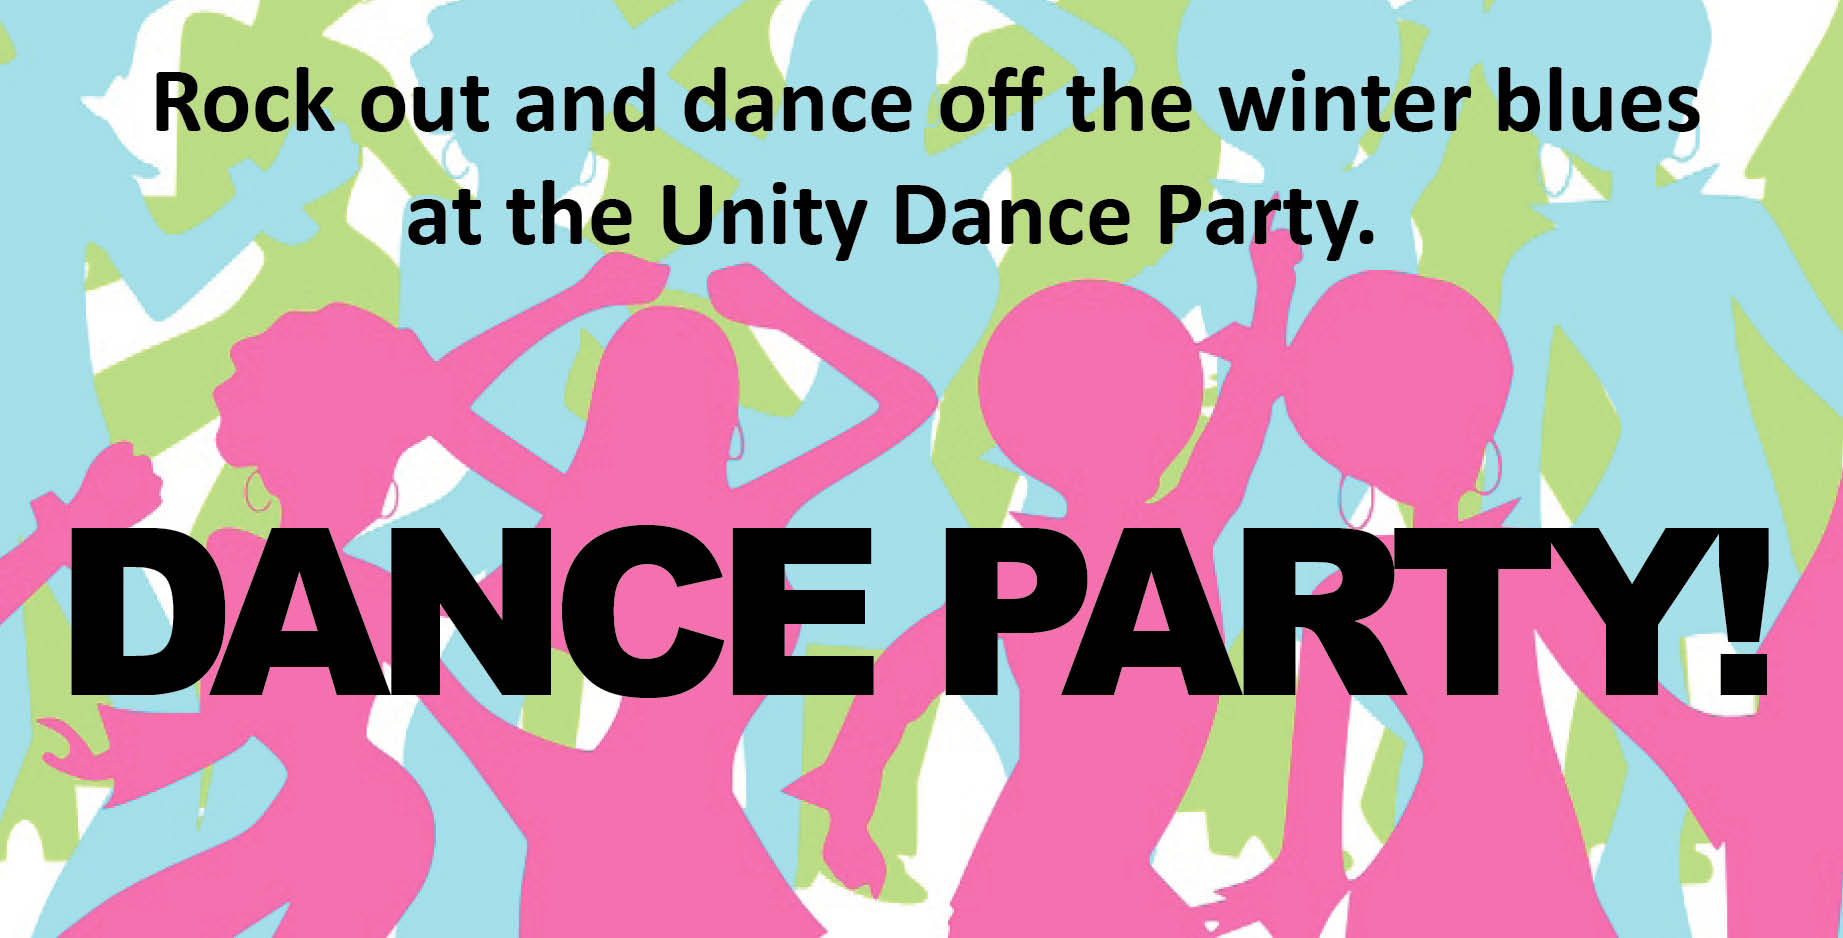 Dance party banner